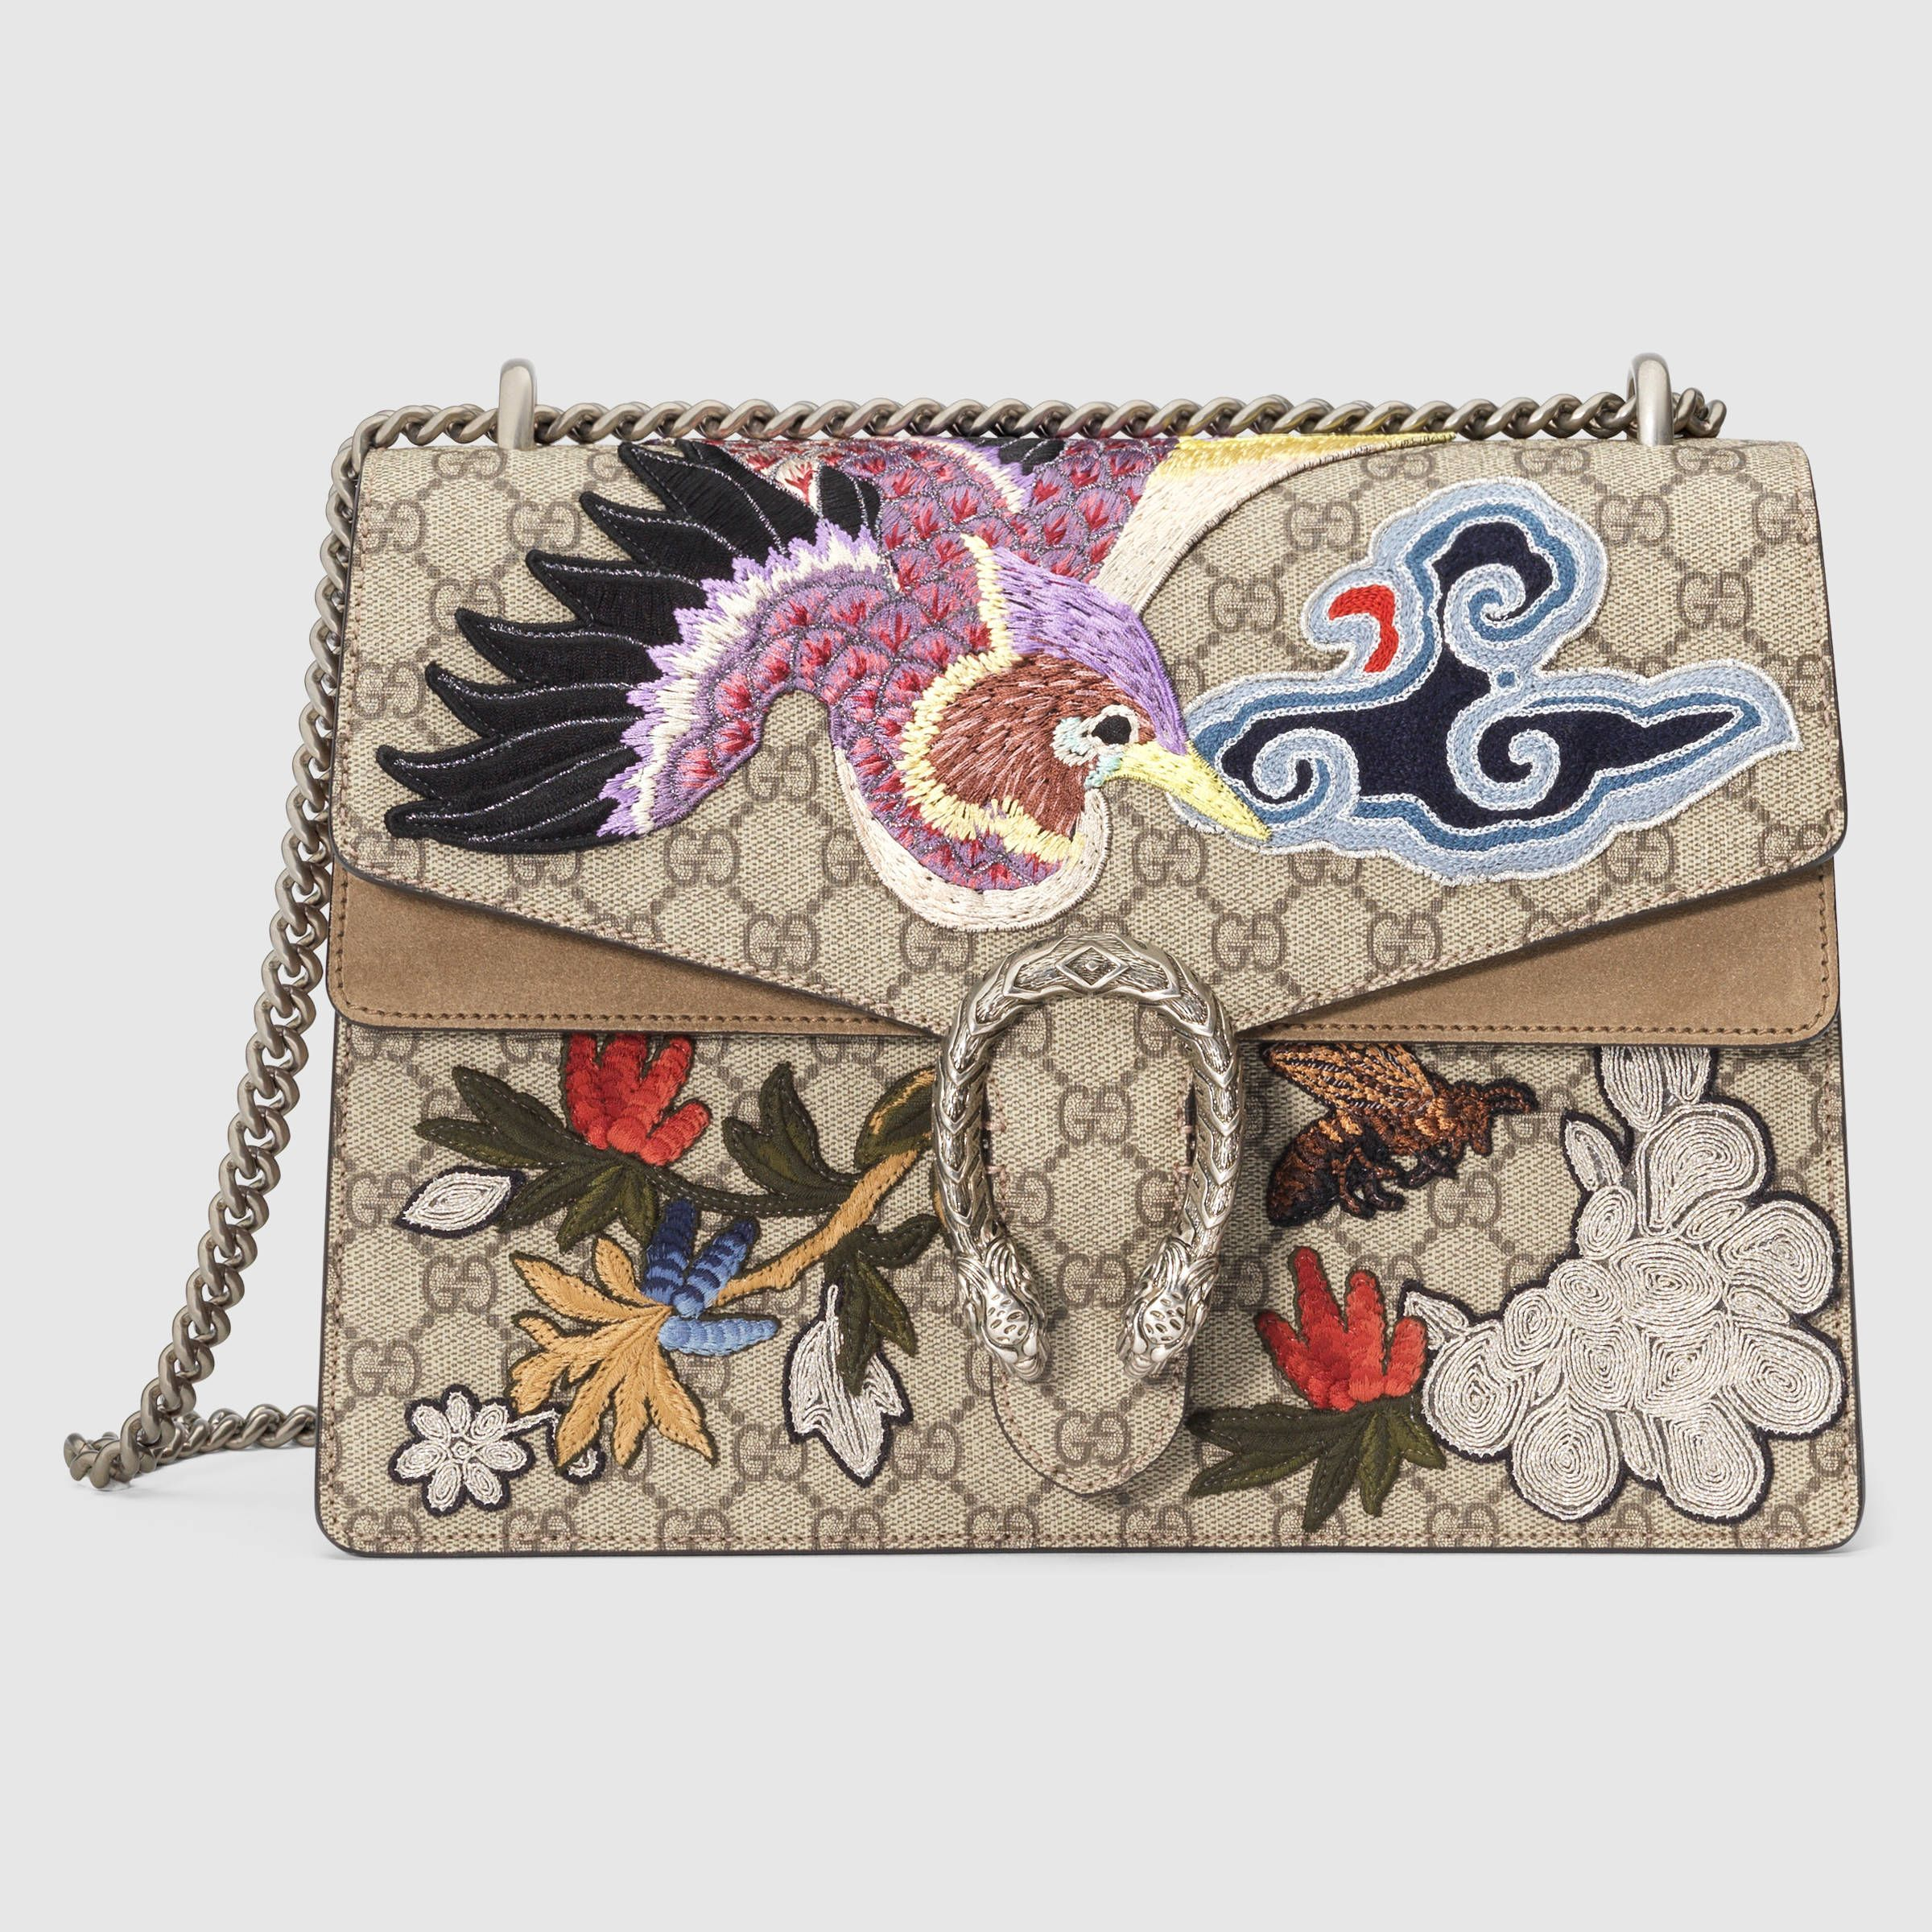 07e07aa81cdf Gucci Women - Gucci Beige/Ebony Dionysus w/Bird and Flowers GG Supreme  Canvas w/taupe suede sides shoulder bag $3,800.00